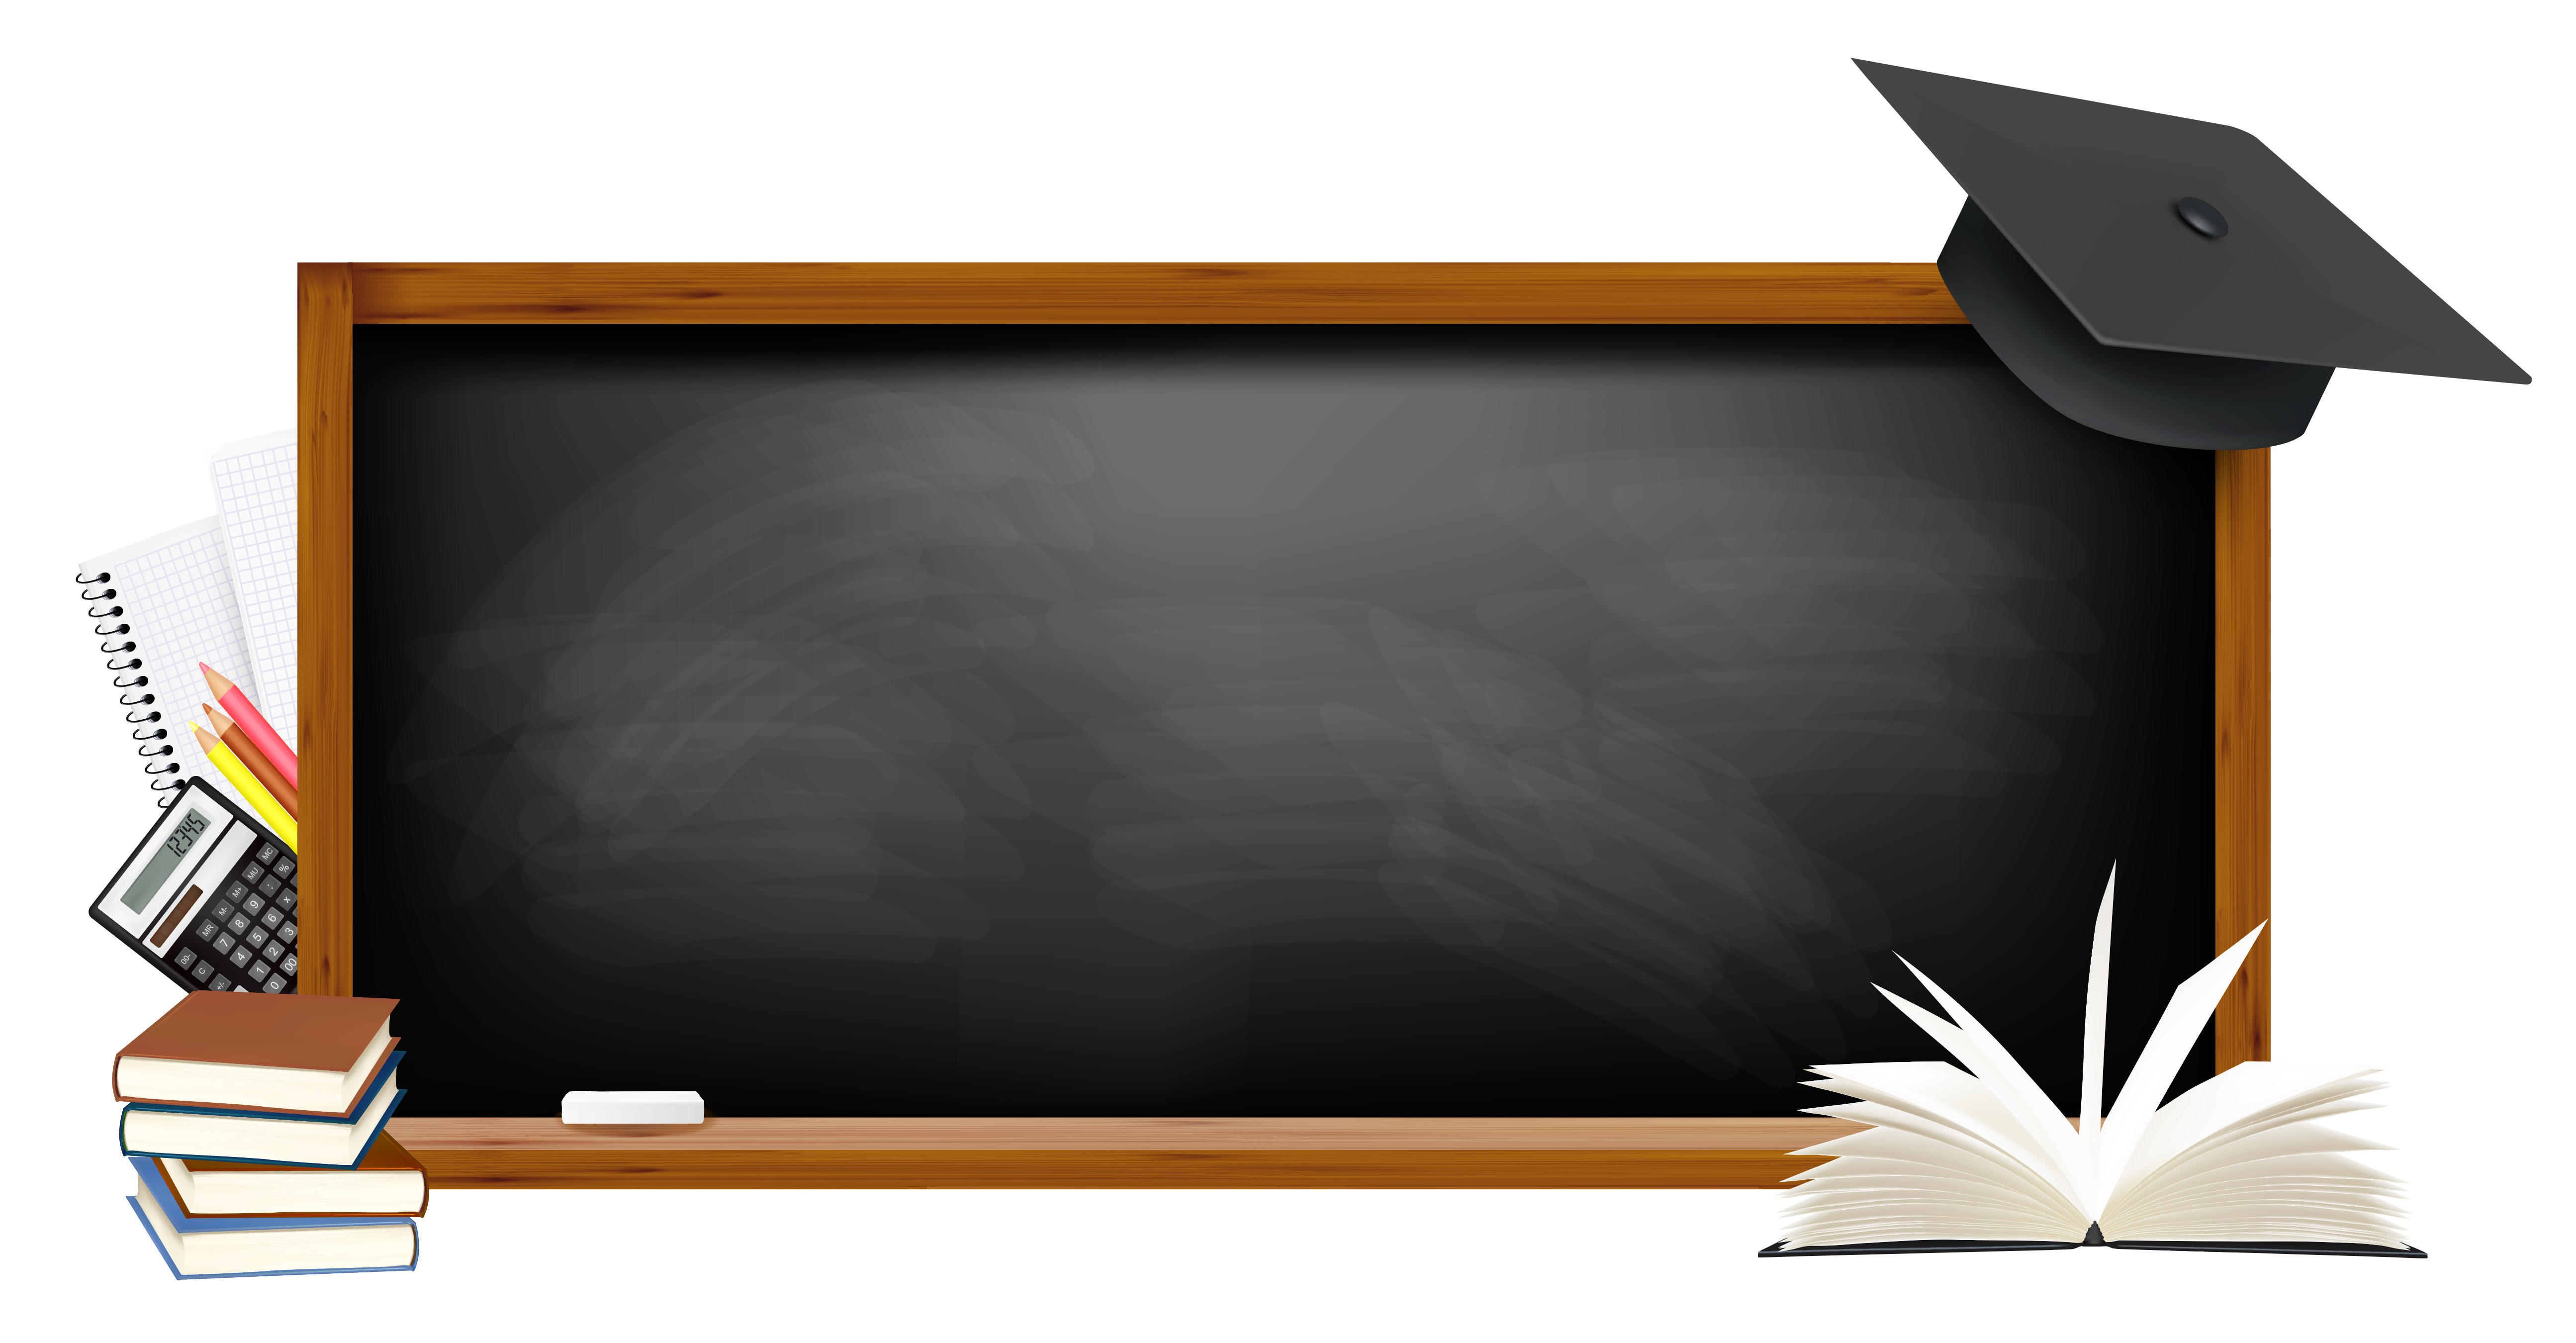 School room clipart png black and white download Board of education School Blackboard Chalkboard eraser Clip art ... png black and white download